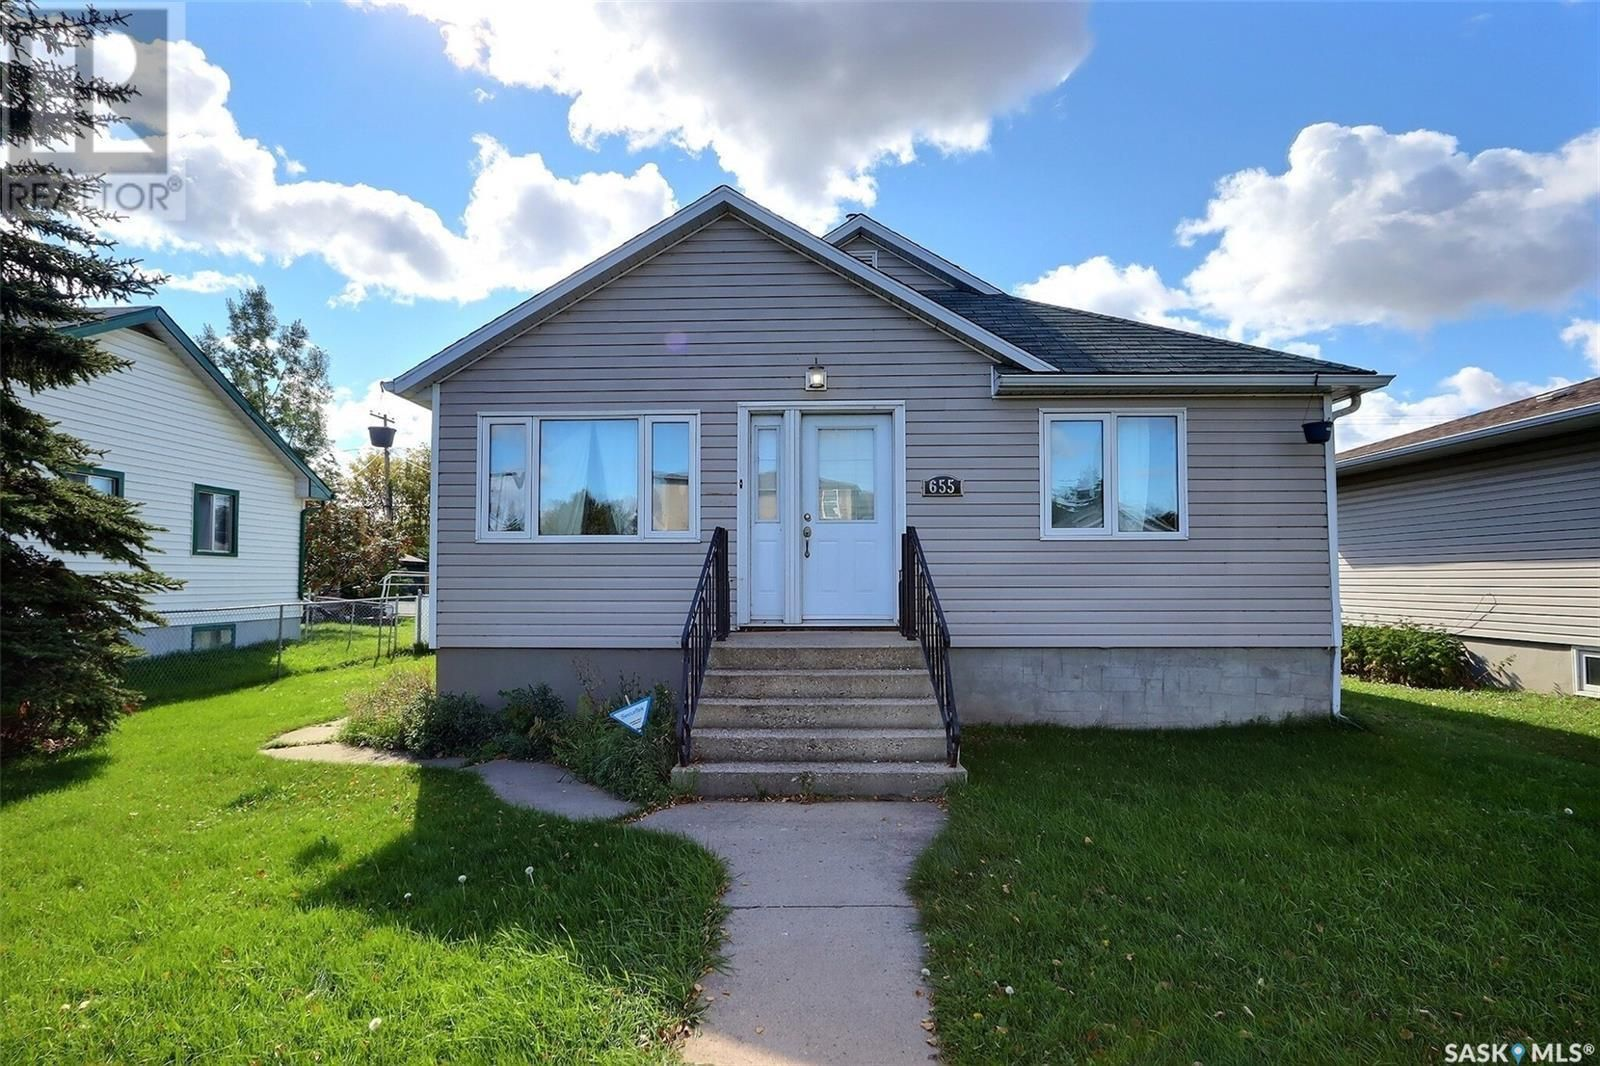 Main Photo: 655 4th ST E in Prince Albert: House for sale : MLS®# SK872073